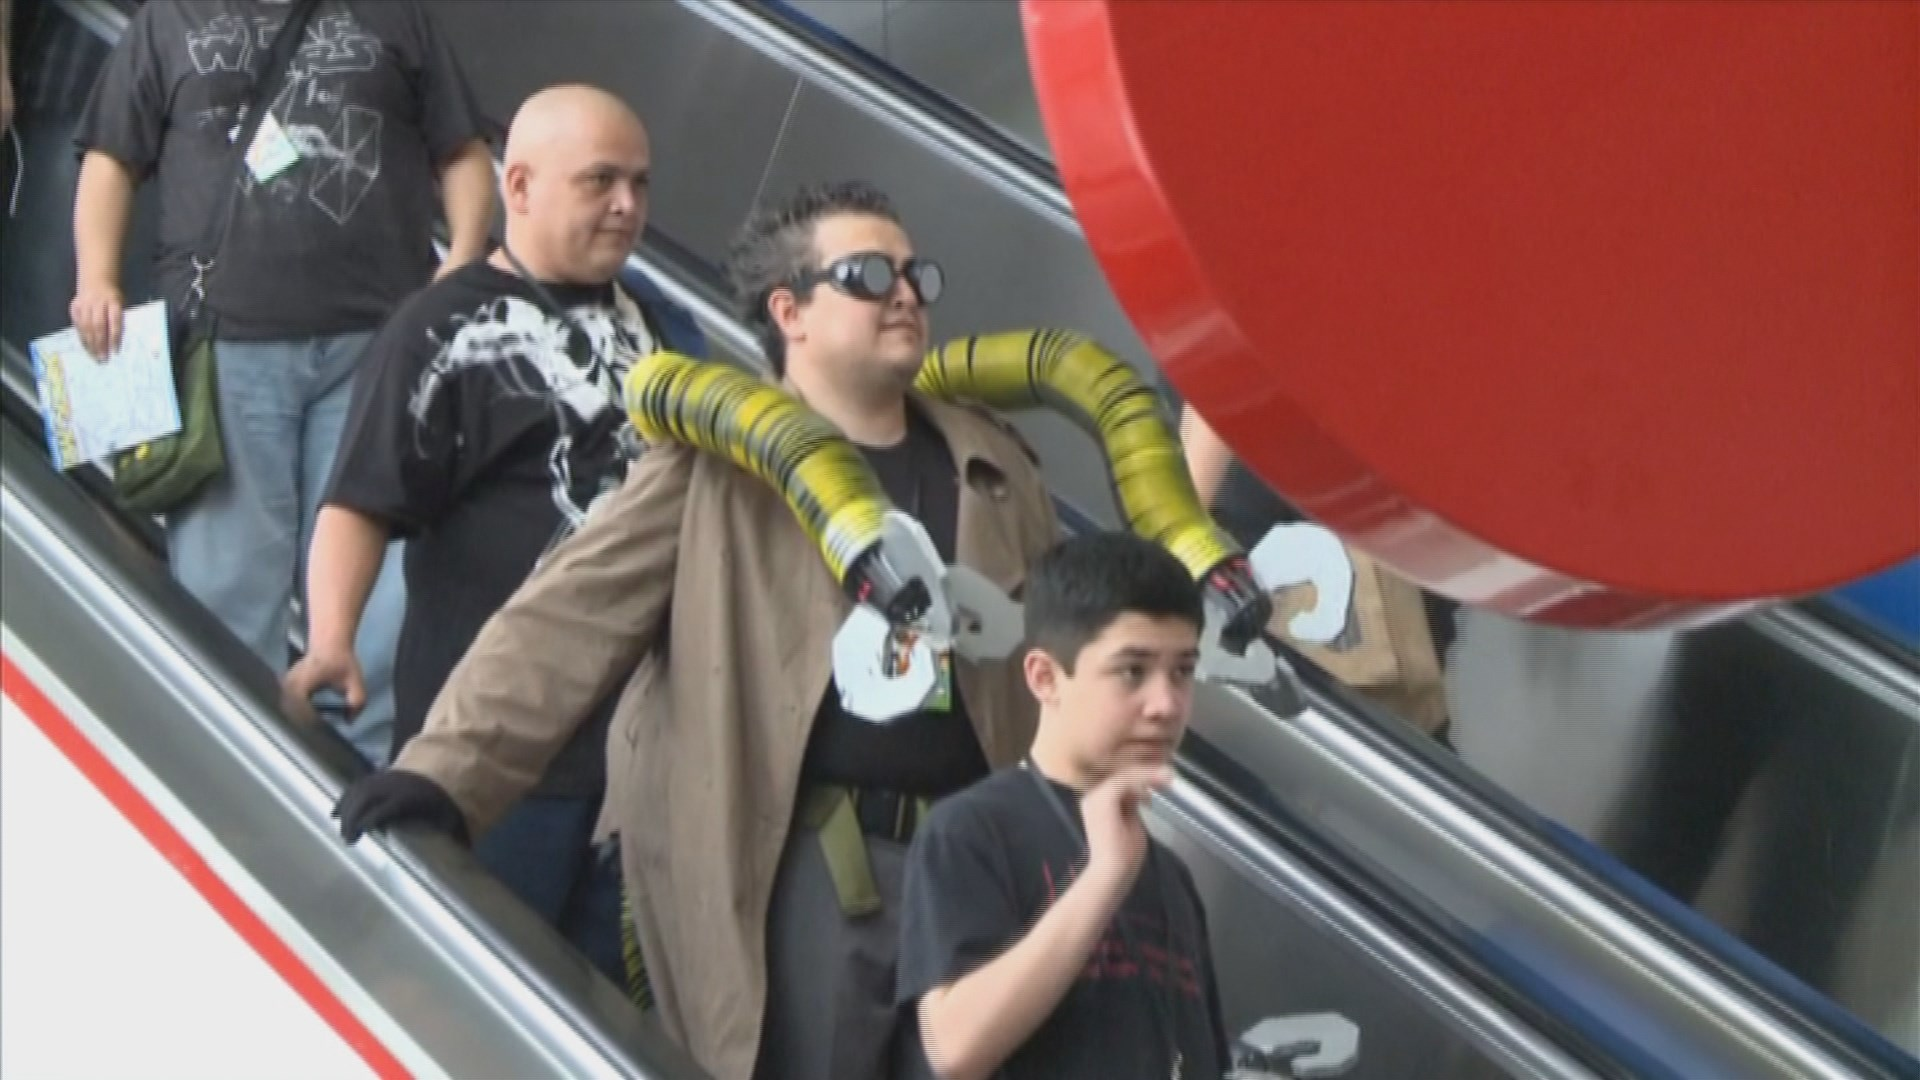 Sci-fi fans head downtown for Comicpalooza